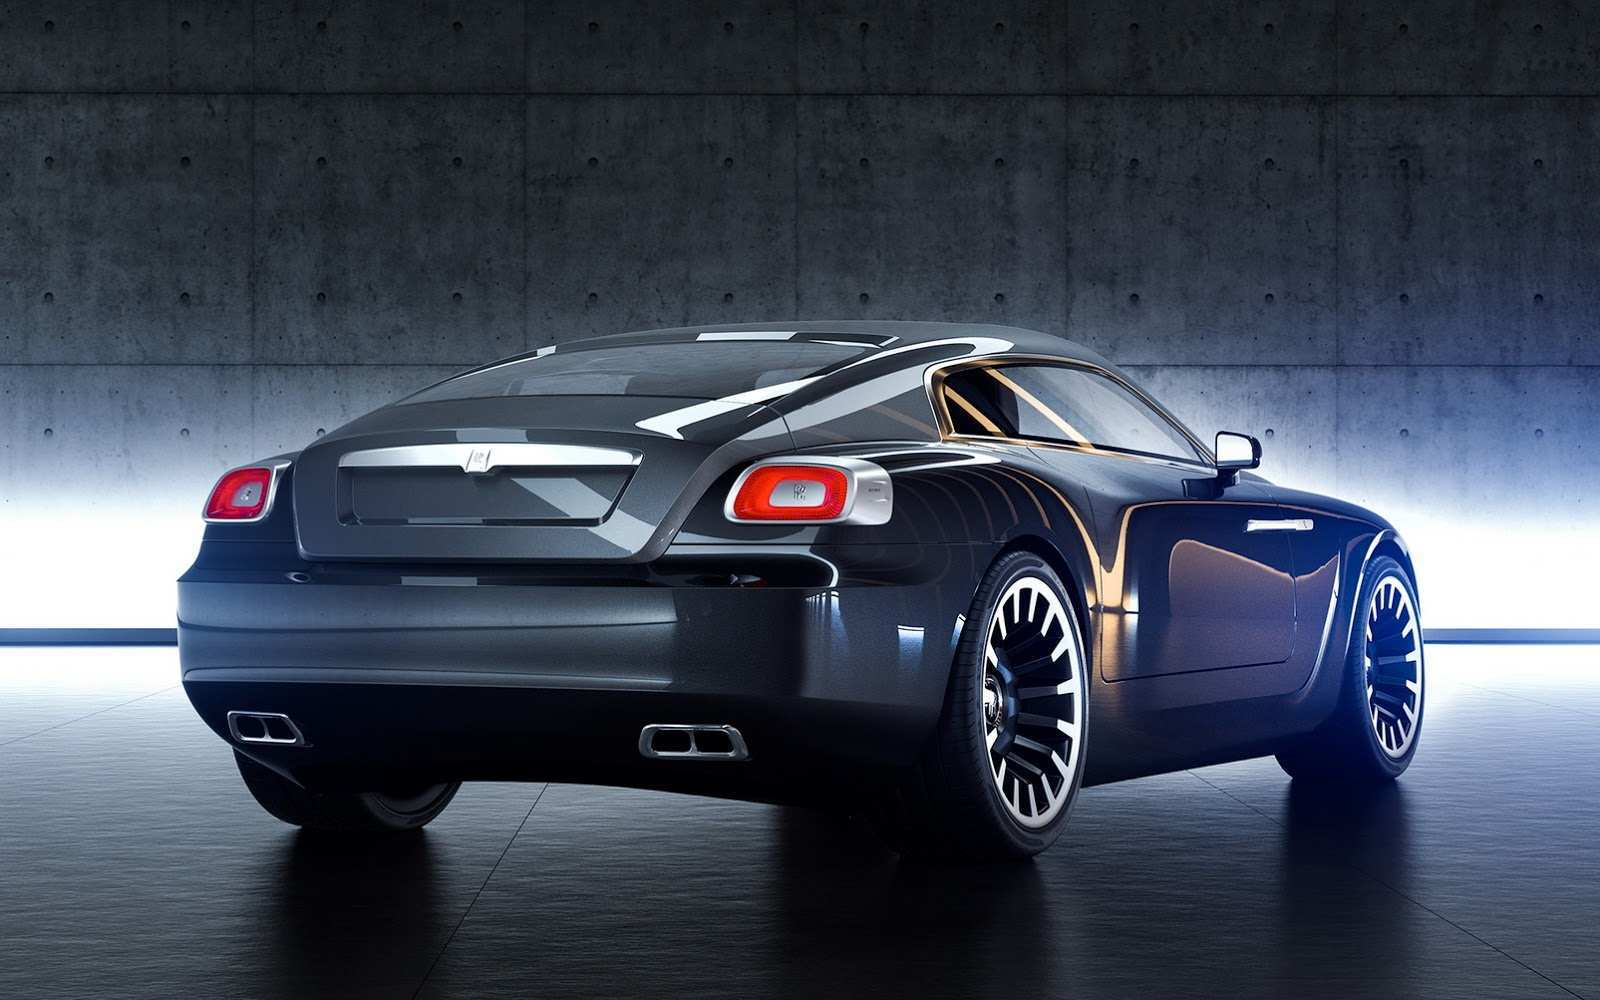 20 The Best 2020 Rolls Royce Wraith Prices